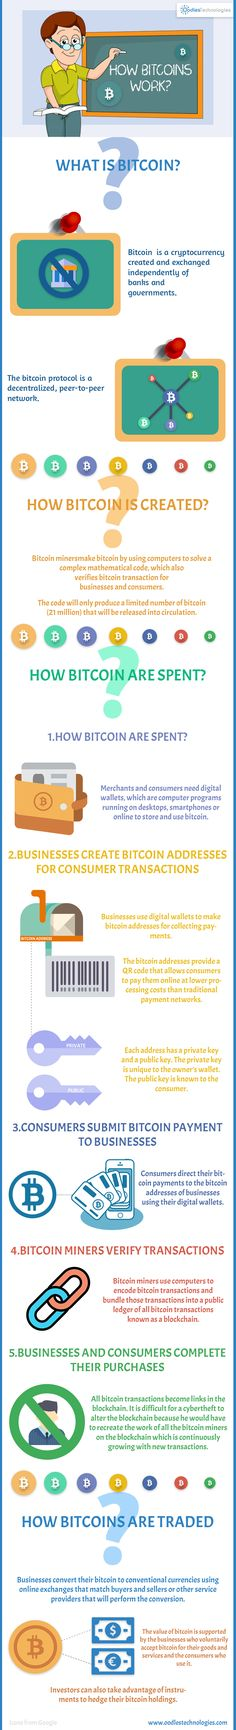 How Bitcoins Work Oodles Technologies' proven capabilities to successfully implement systems that use cryptographic proof of work systems has been helping organizations worldwide, to simplify 'transactions' and cost based processes.